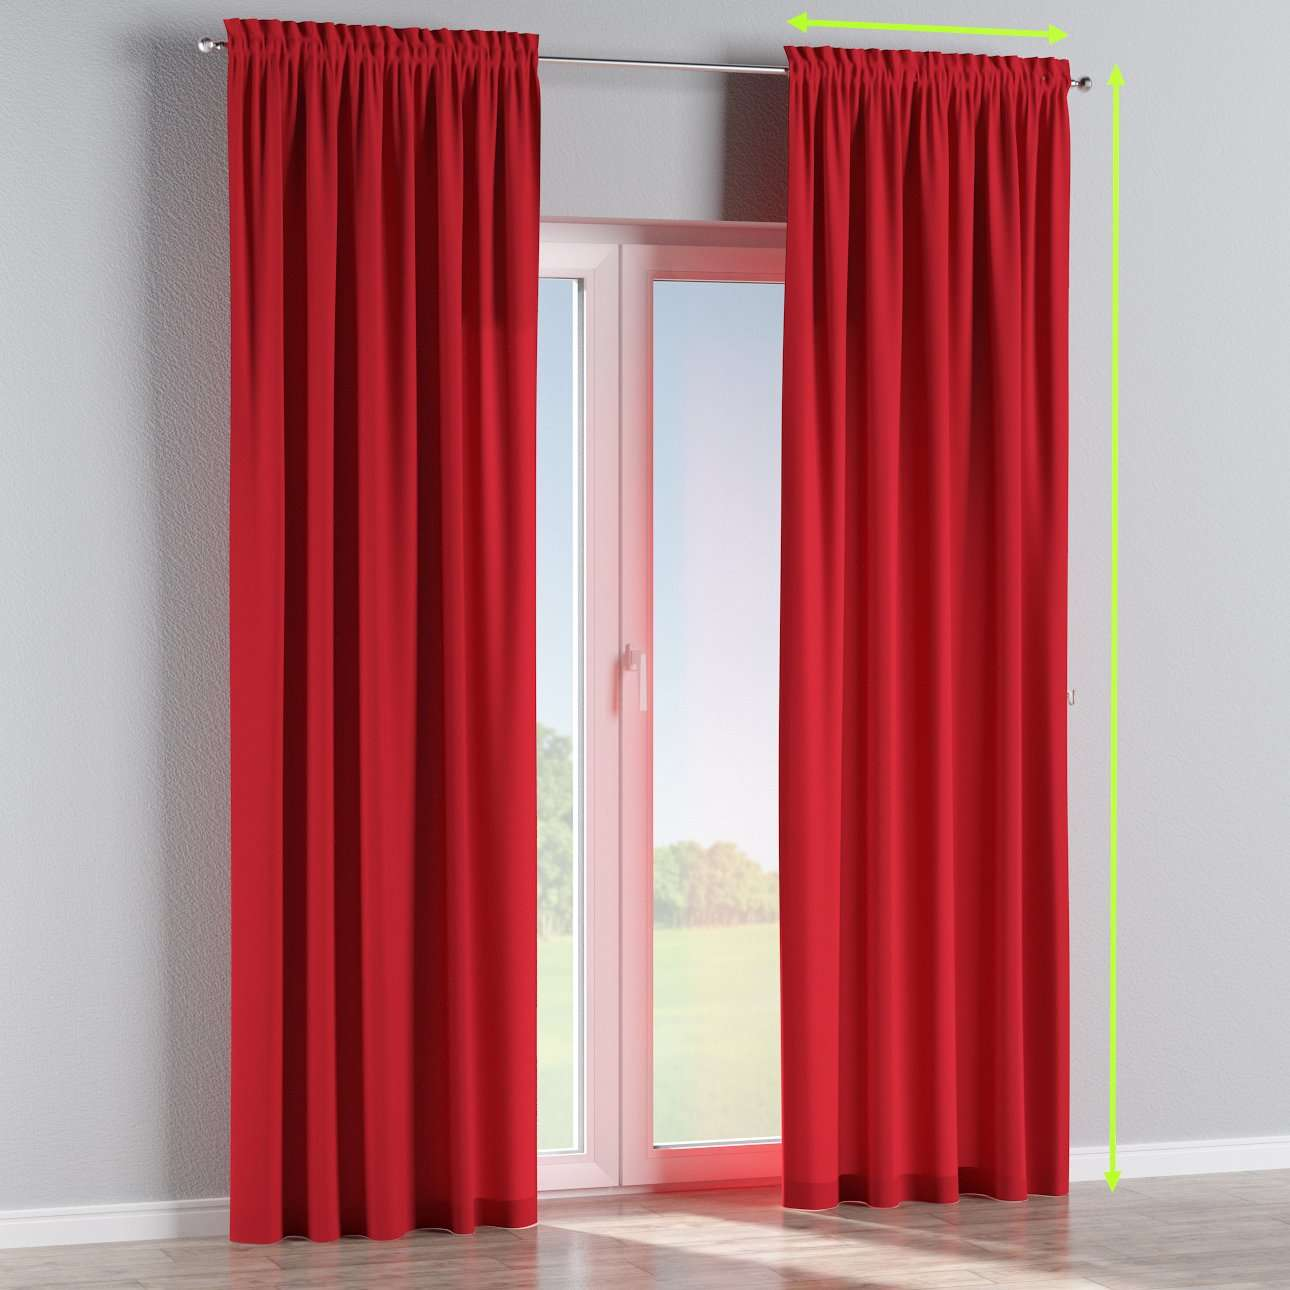 Slot and frill lined curtains in collection Cotton Panama, fabric: 702-04